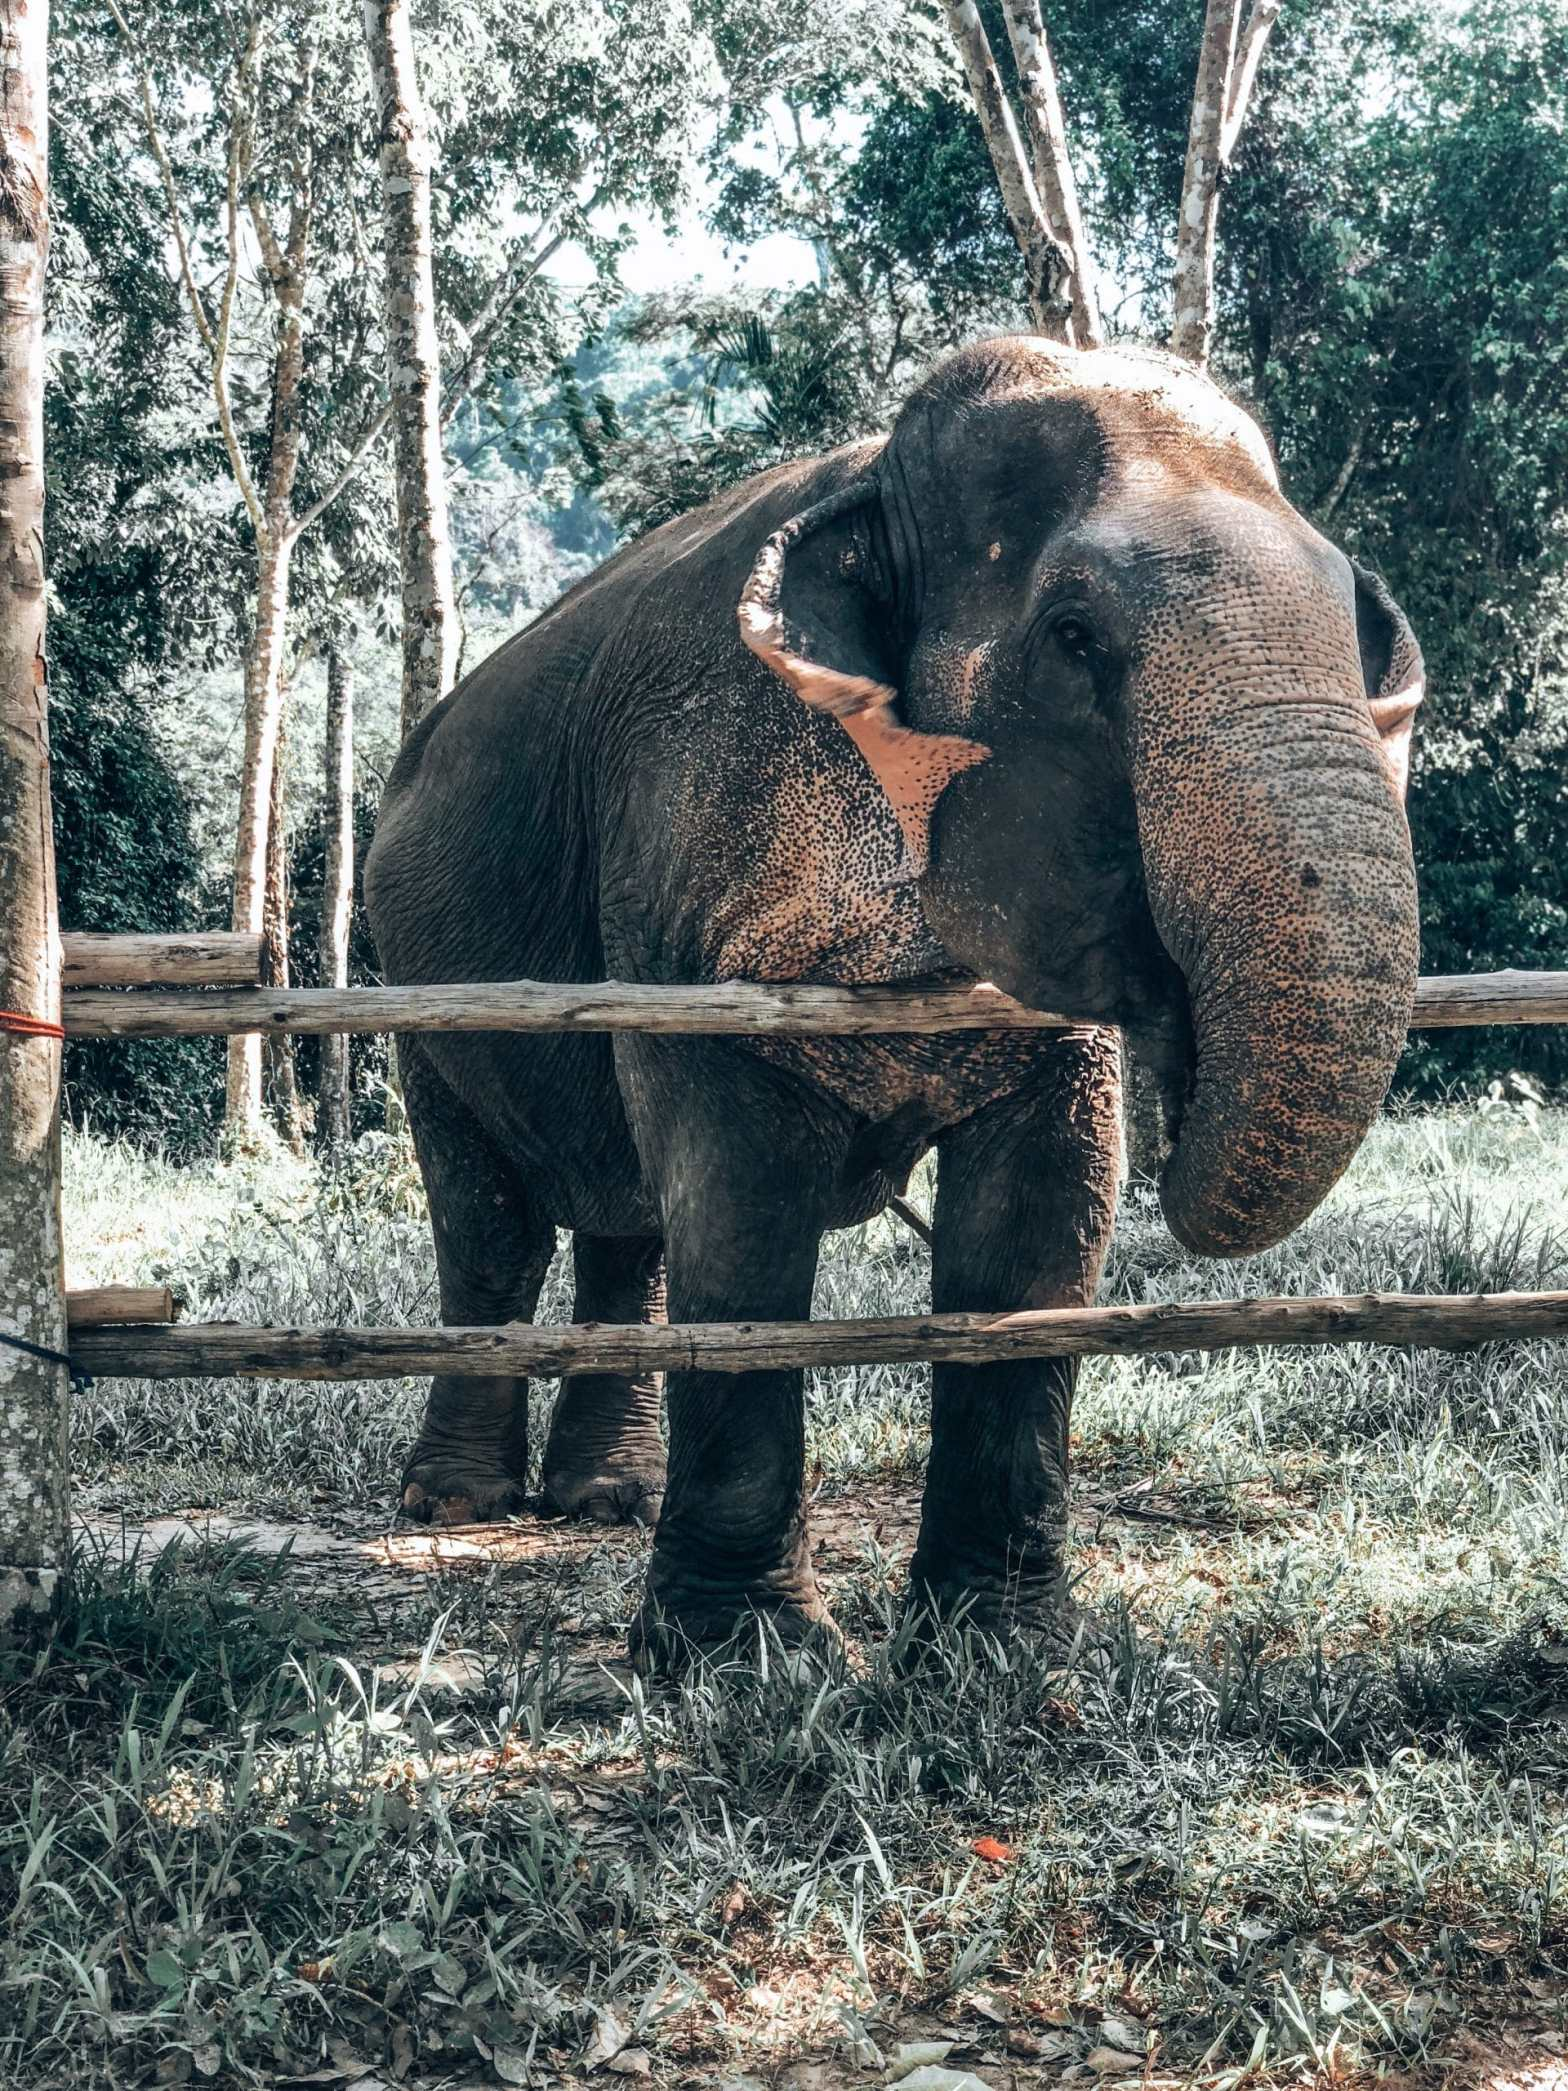 Elephant squeezing watermelon for food